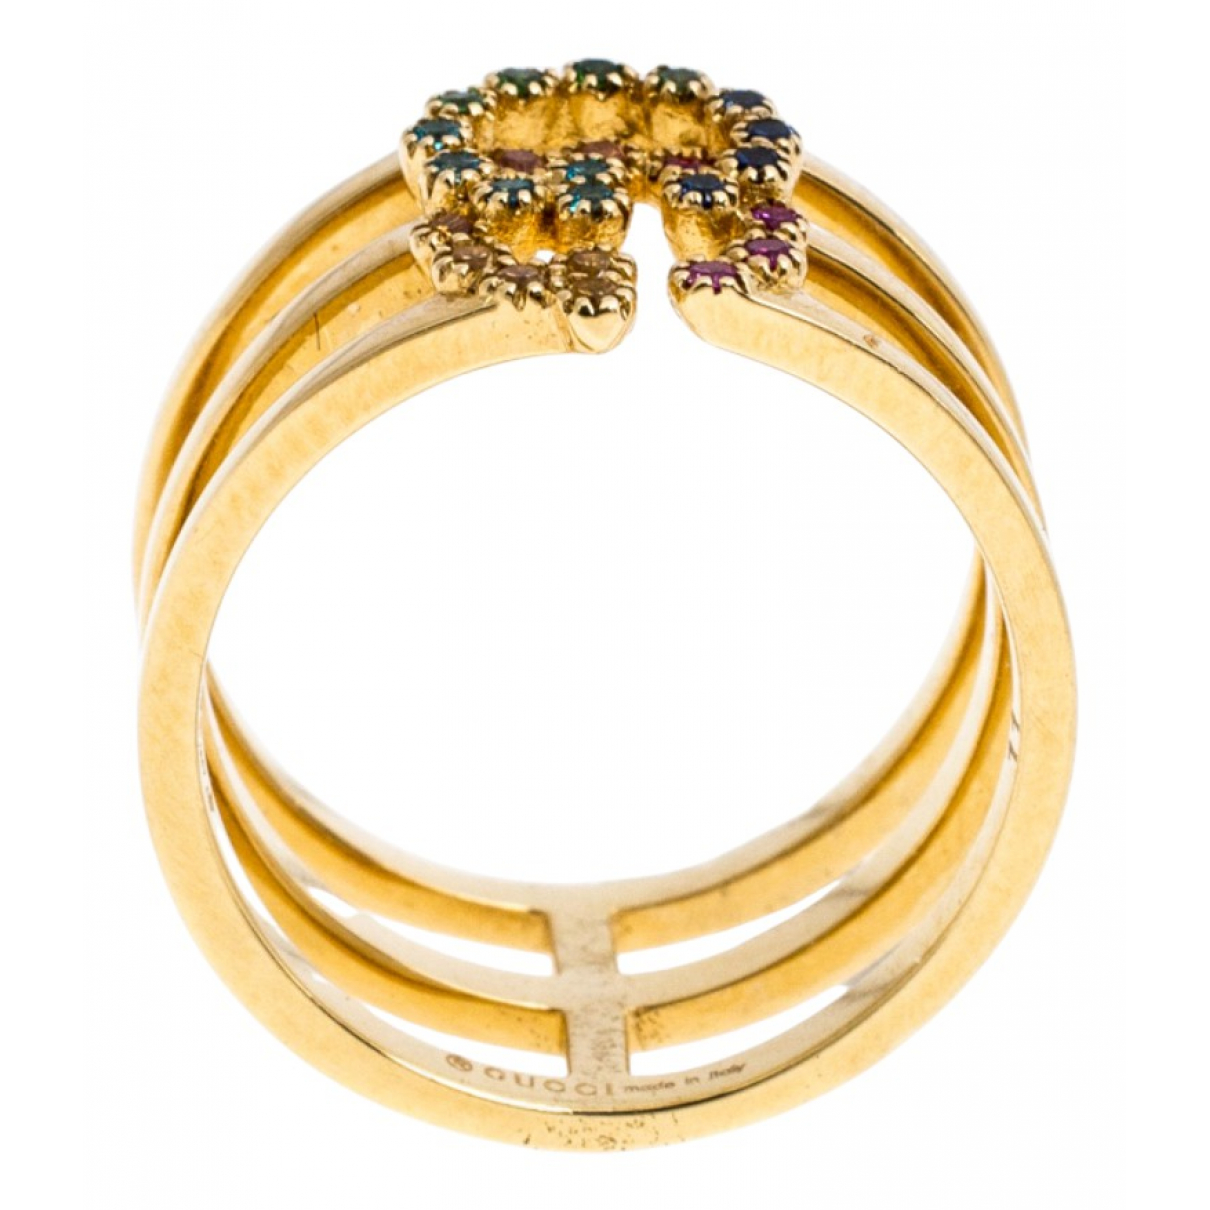 Gucci \N Gold Yellow gold ring for Women 5 ¼ US